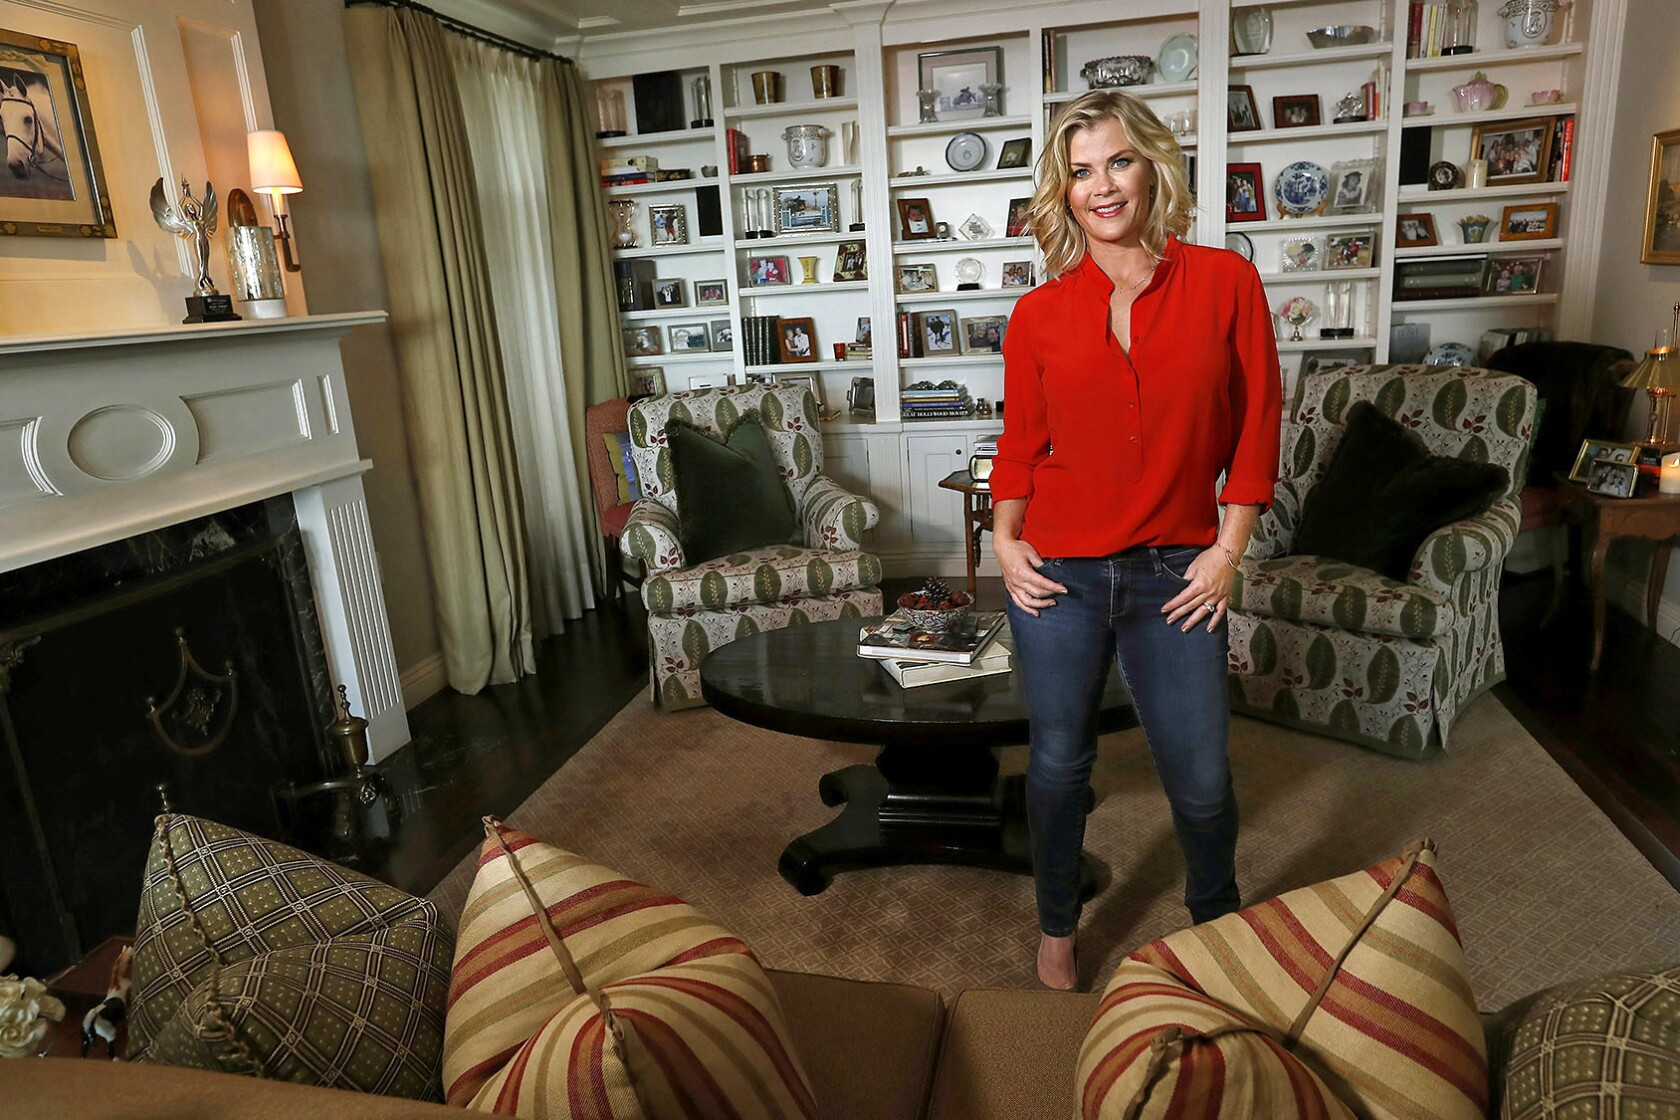 Alison Sweeney Family Pictures my favorite room: alison sweeney's living room can do a